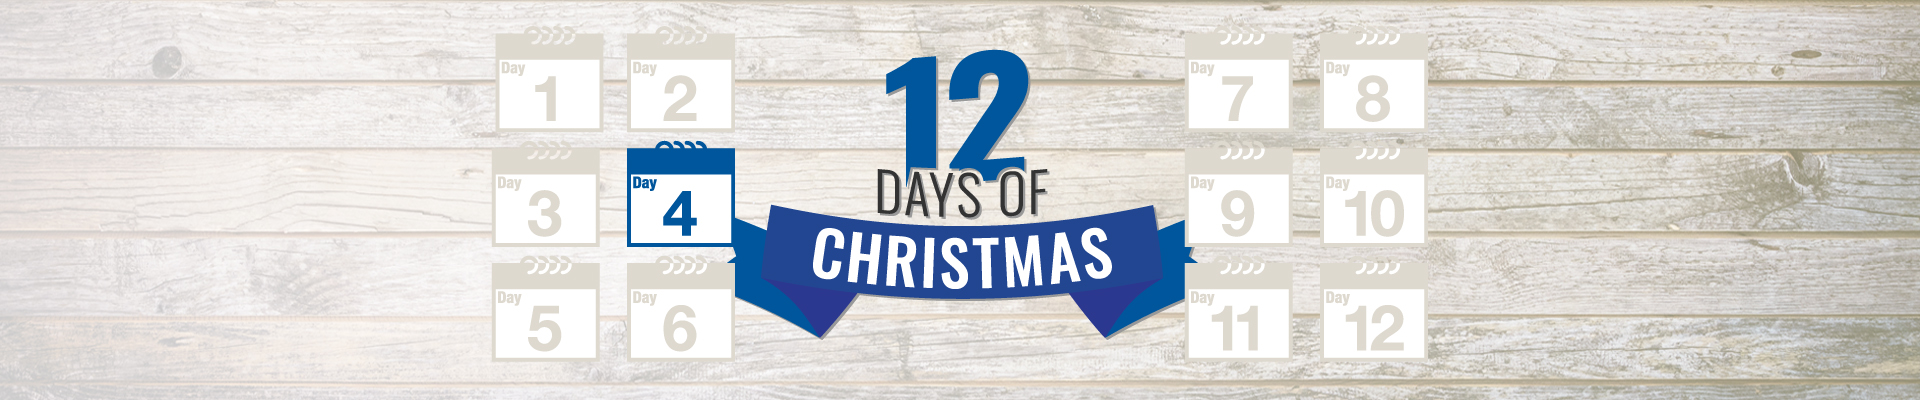 12 Days of Christmas Deals - 2017-12-16